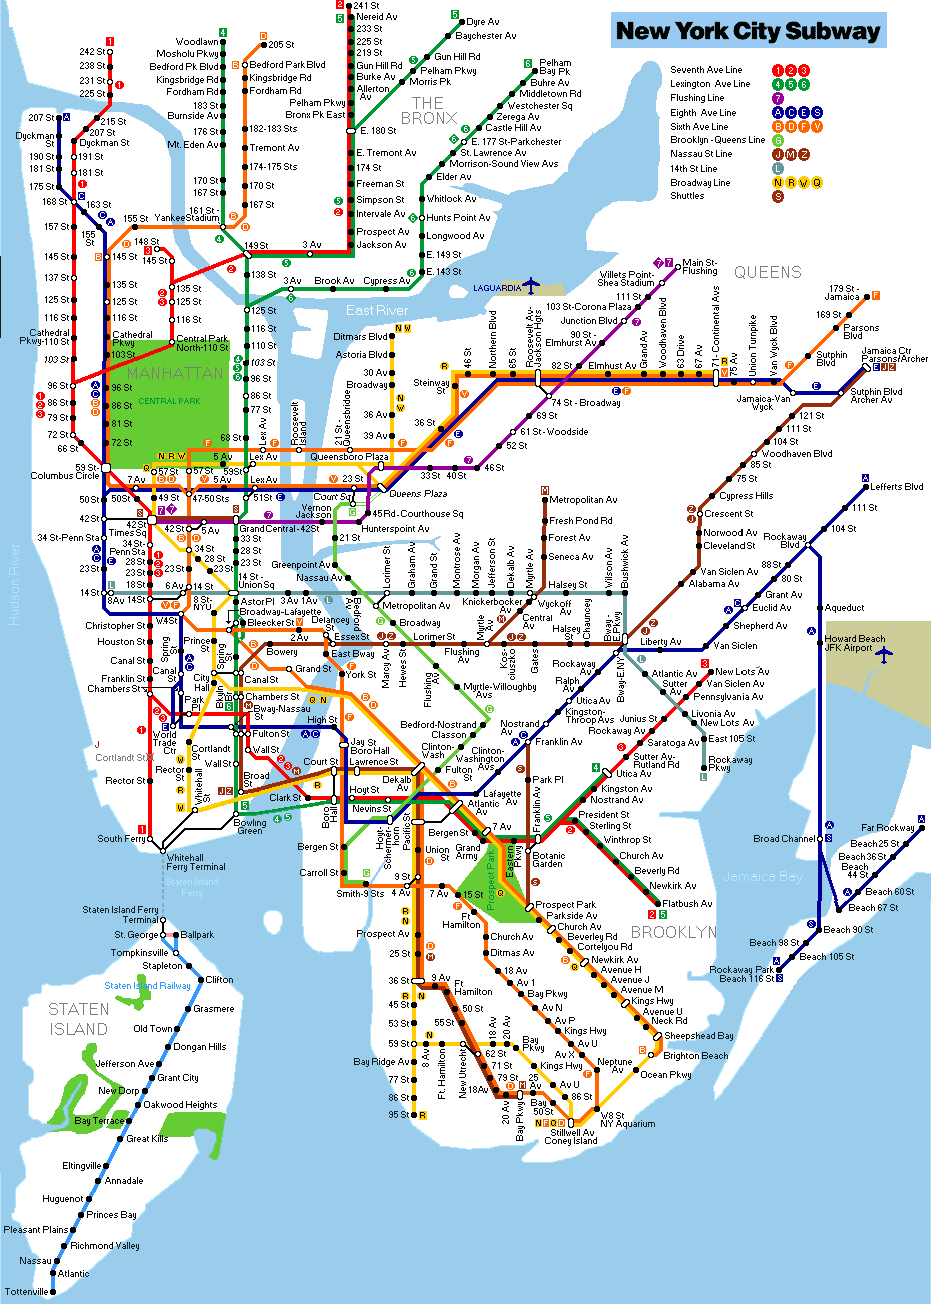 Download New York Subway Map.Subway New York City Trippers